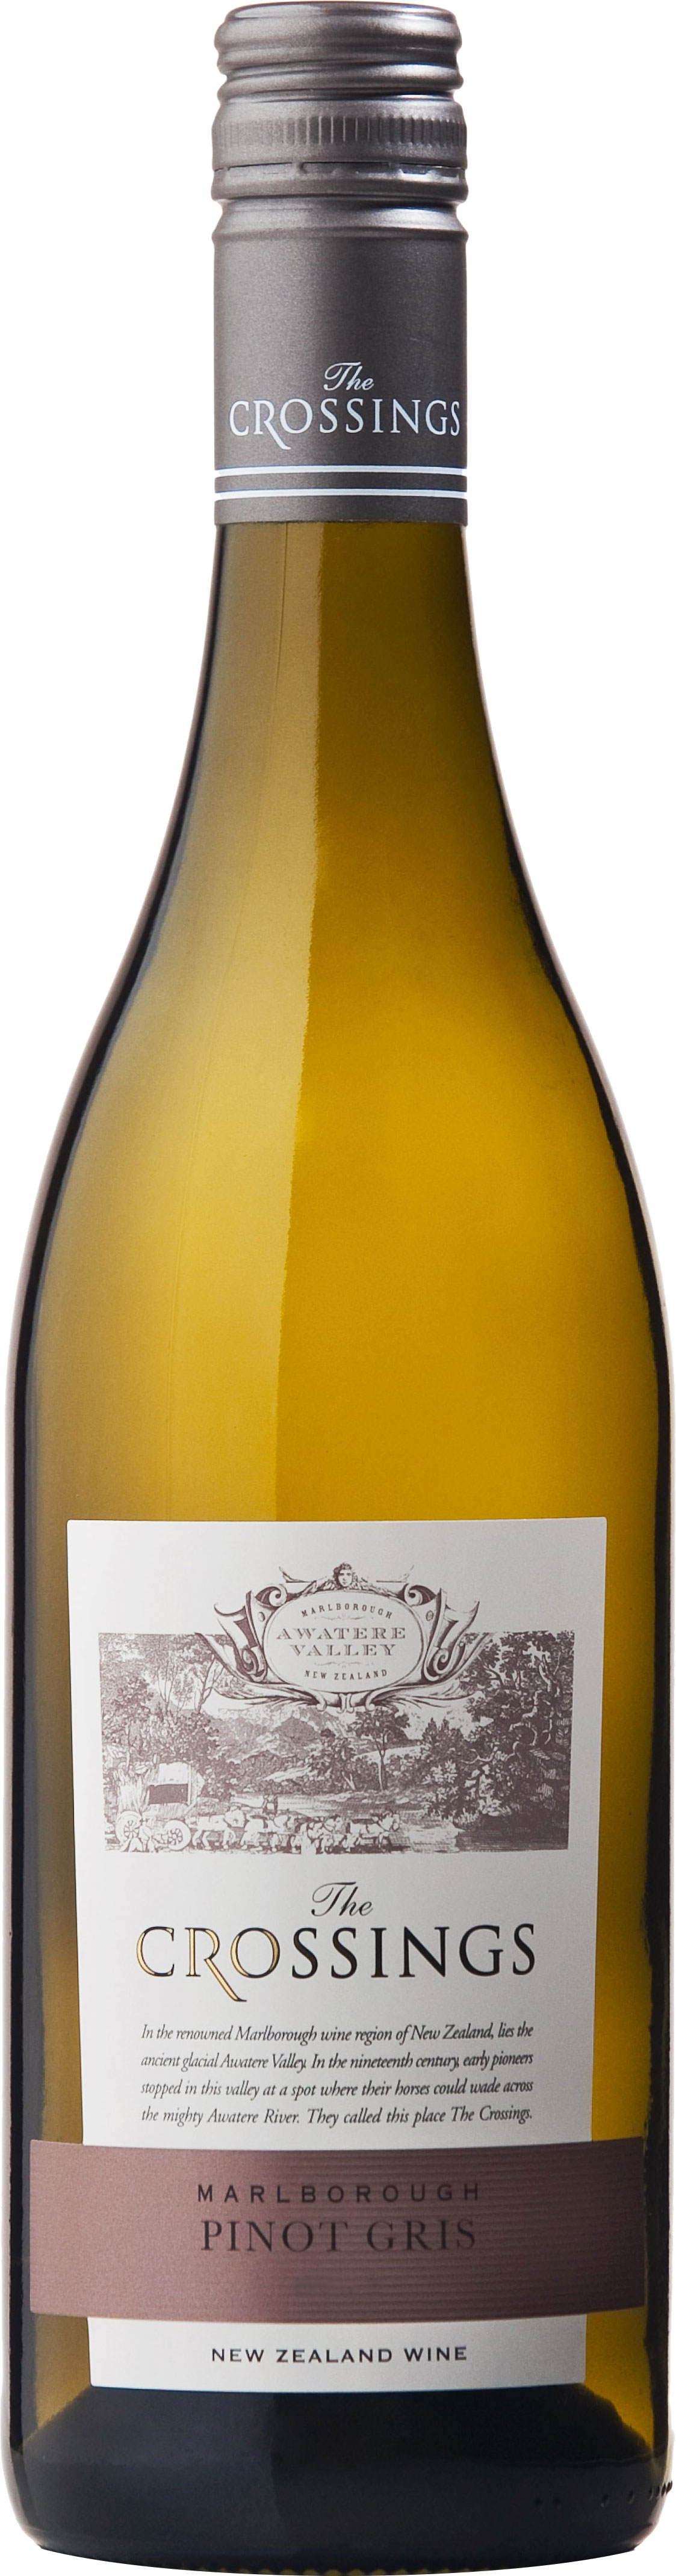 The Crossings - Awatere Valley Pinot Gris 2017 6x 75cl Bottles